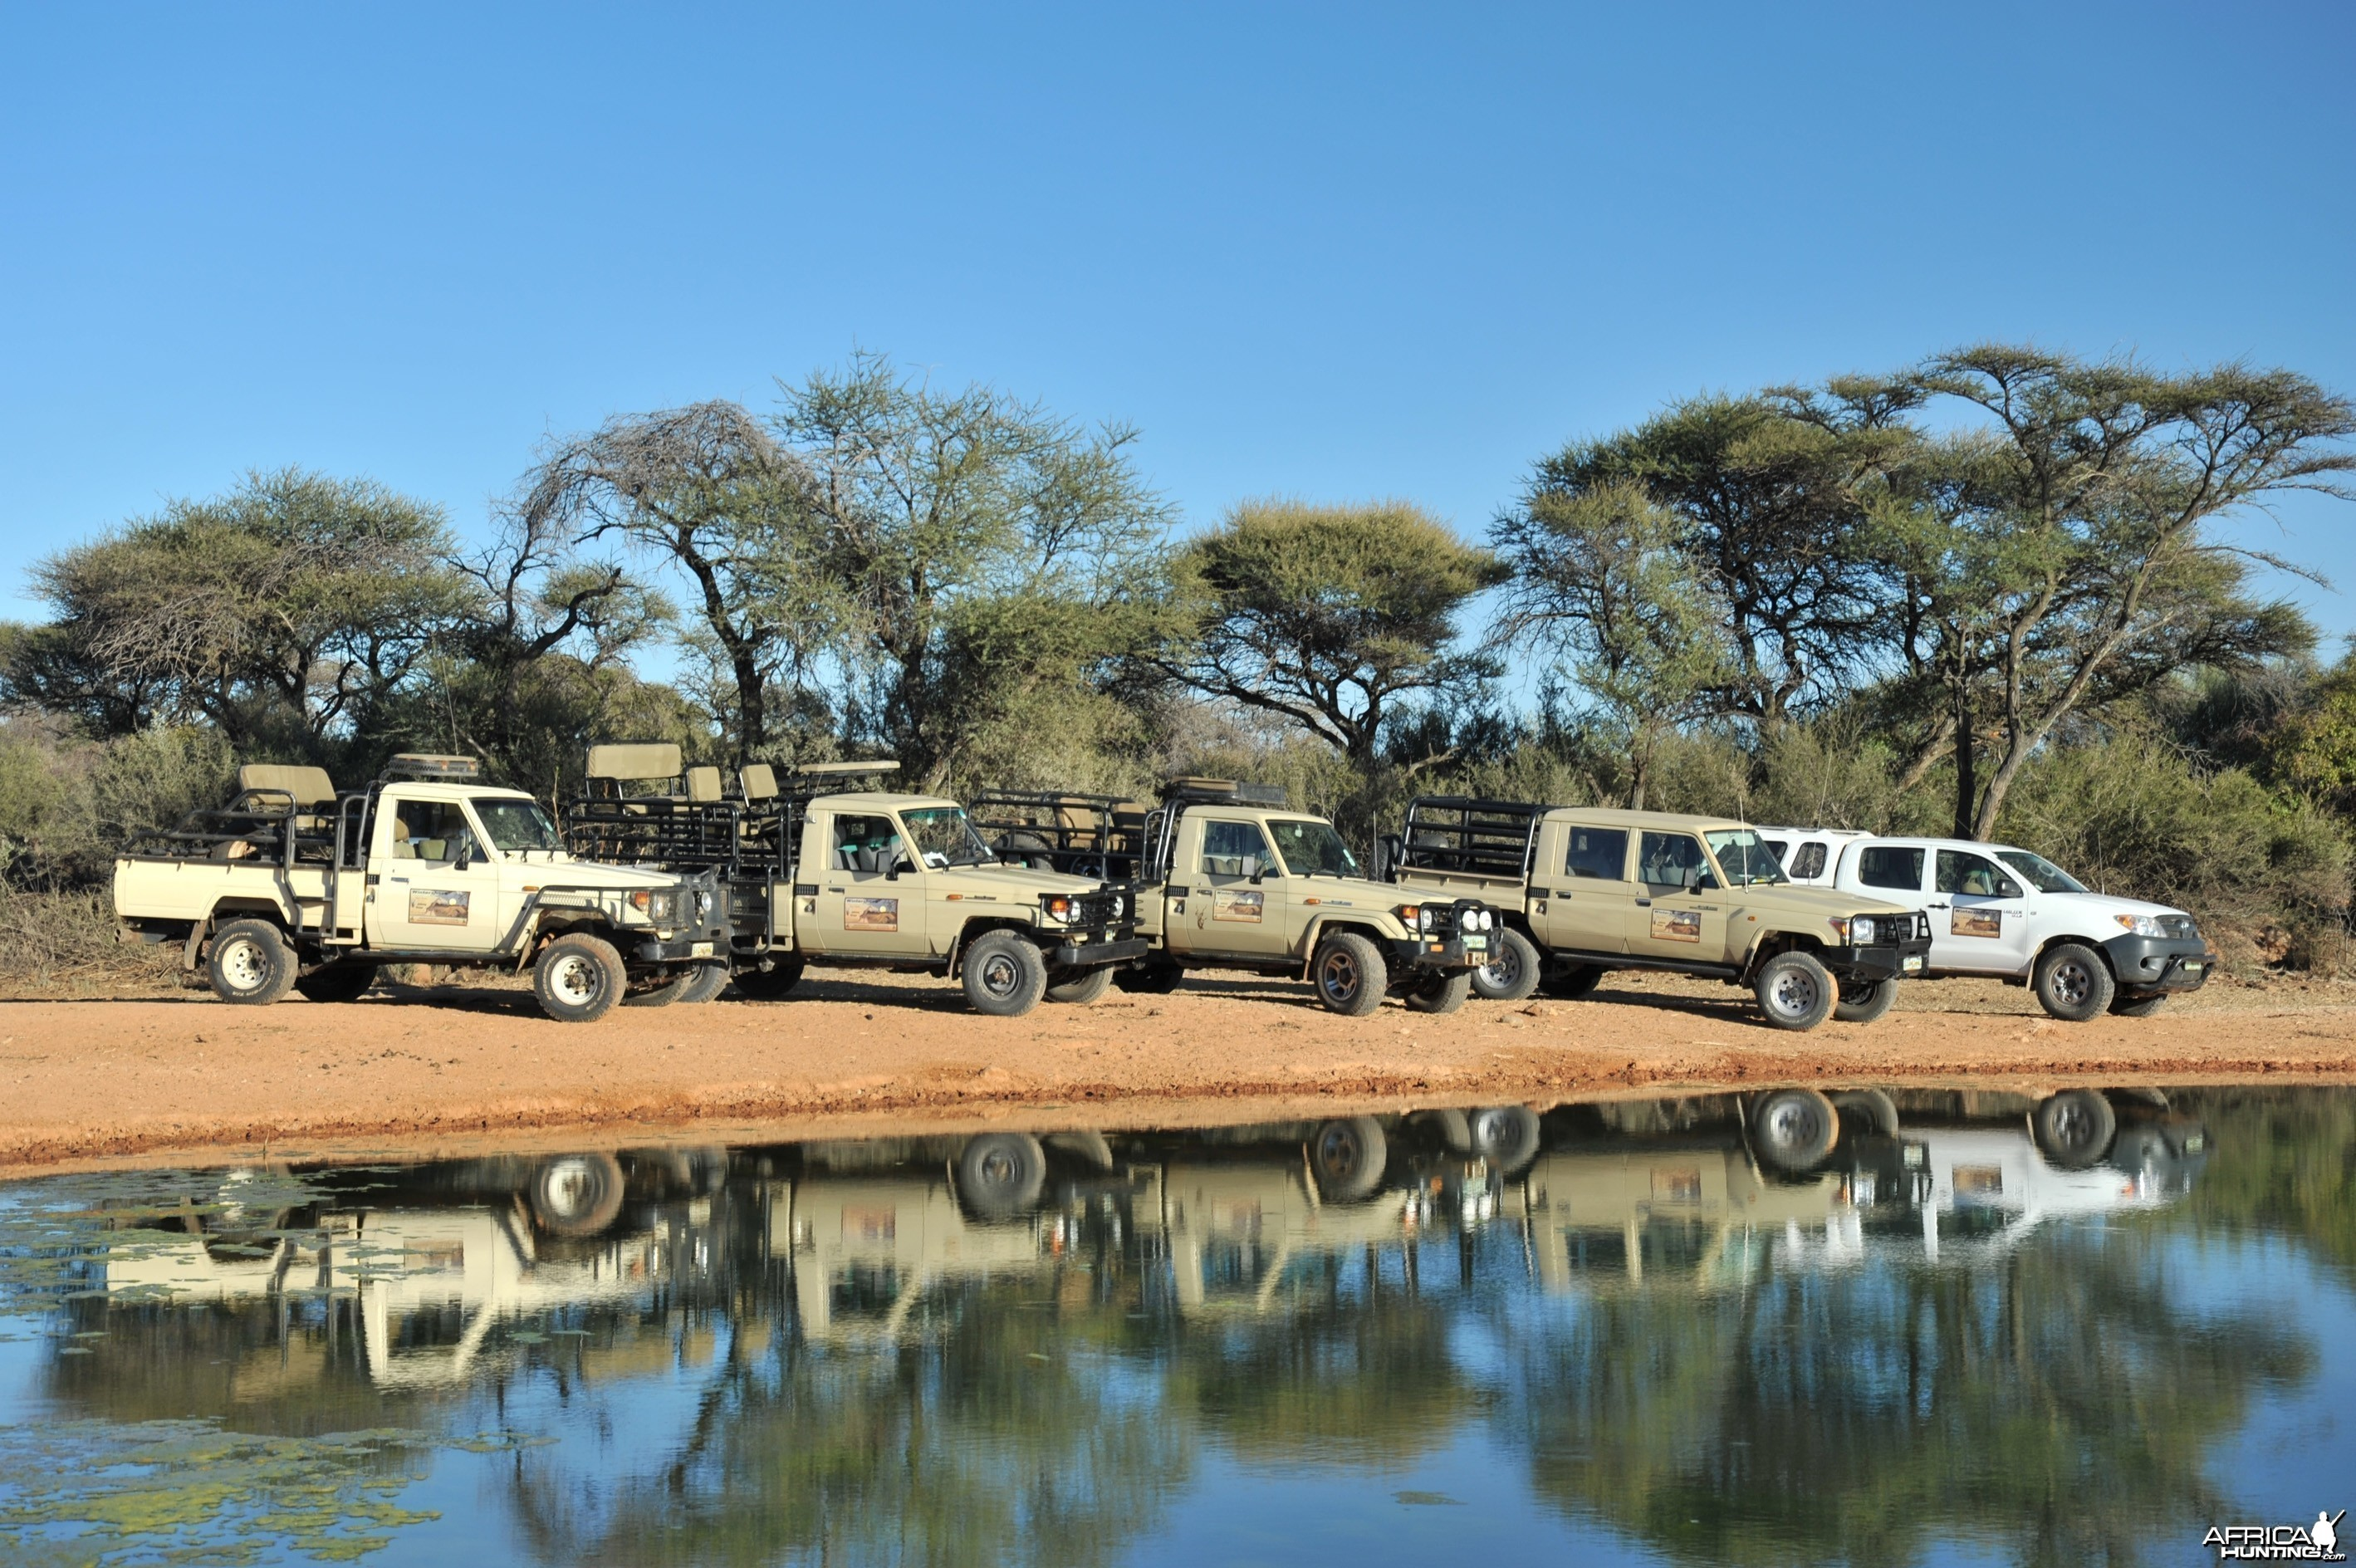 Hunting Vehicles - Wintershoek Johnny Vivier Safaris in South Africa